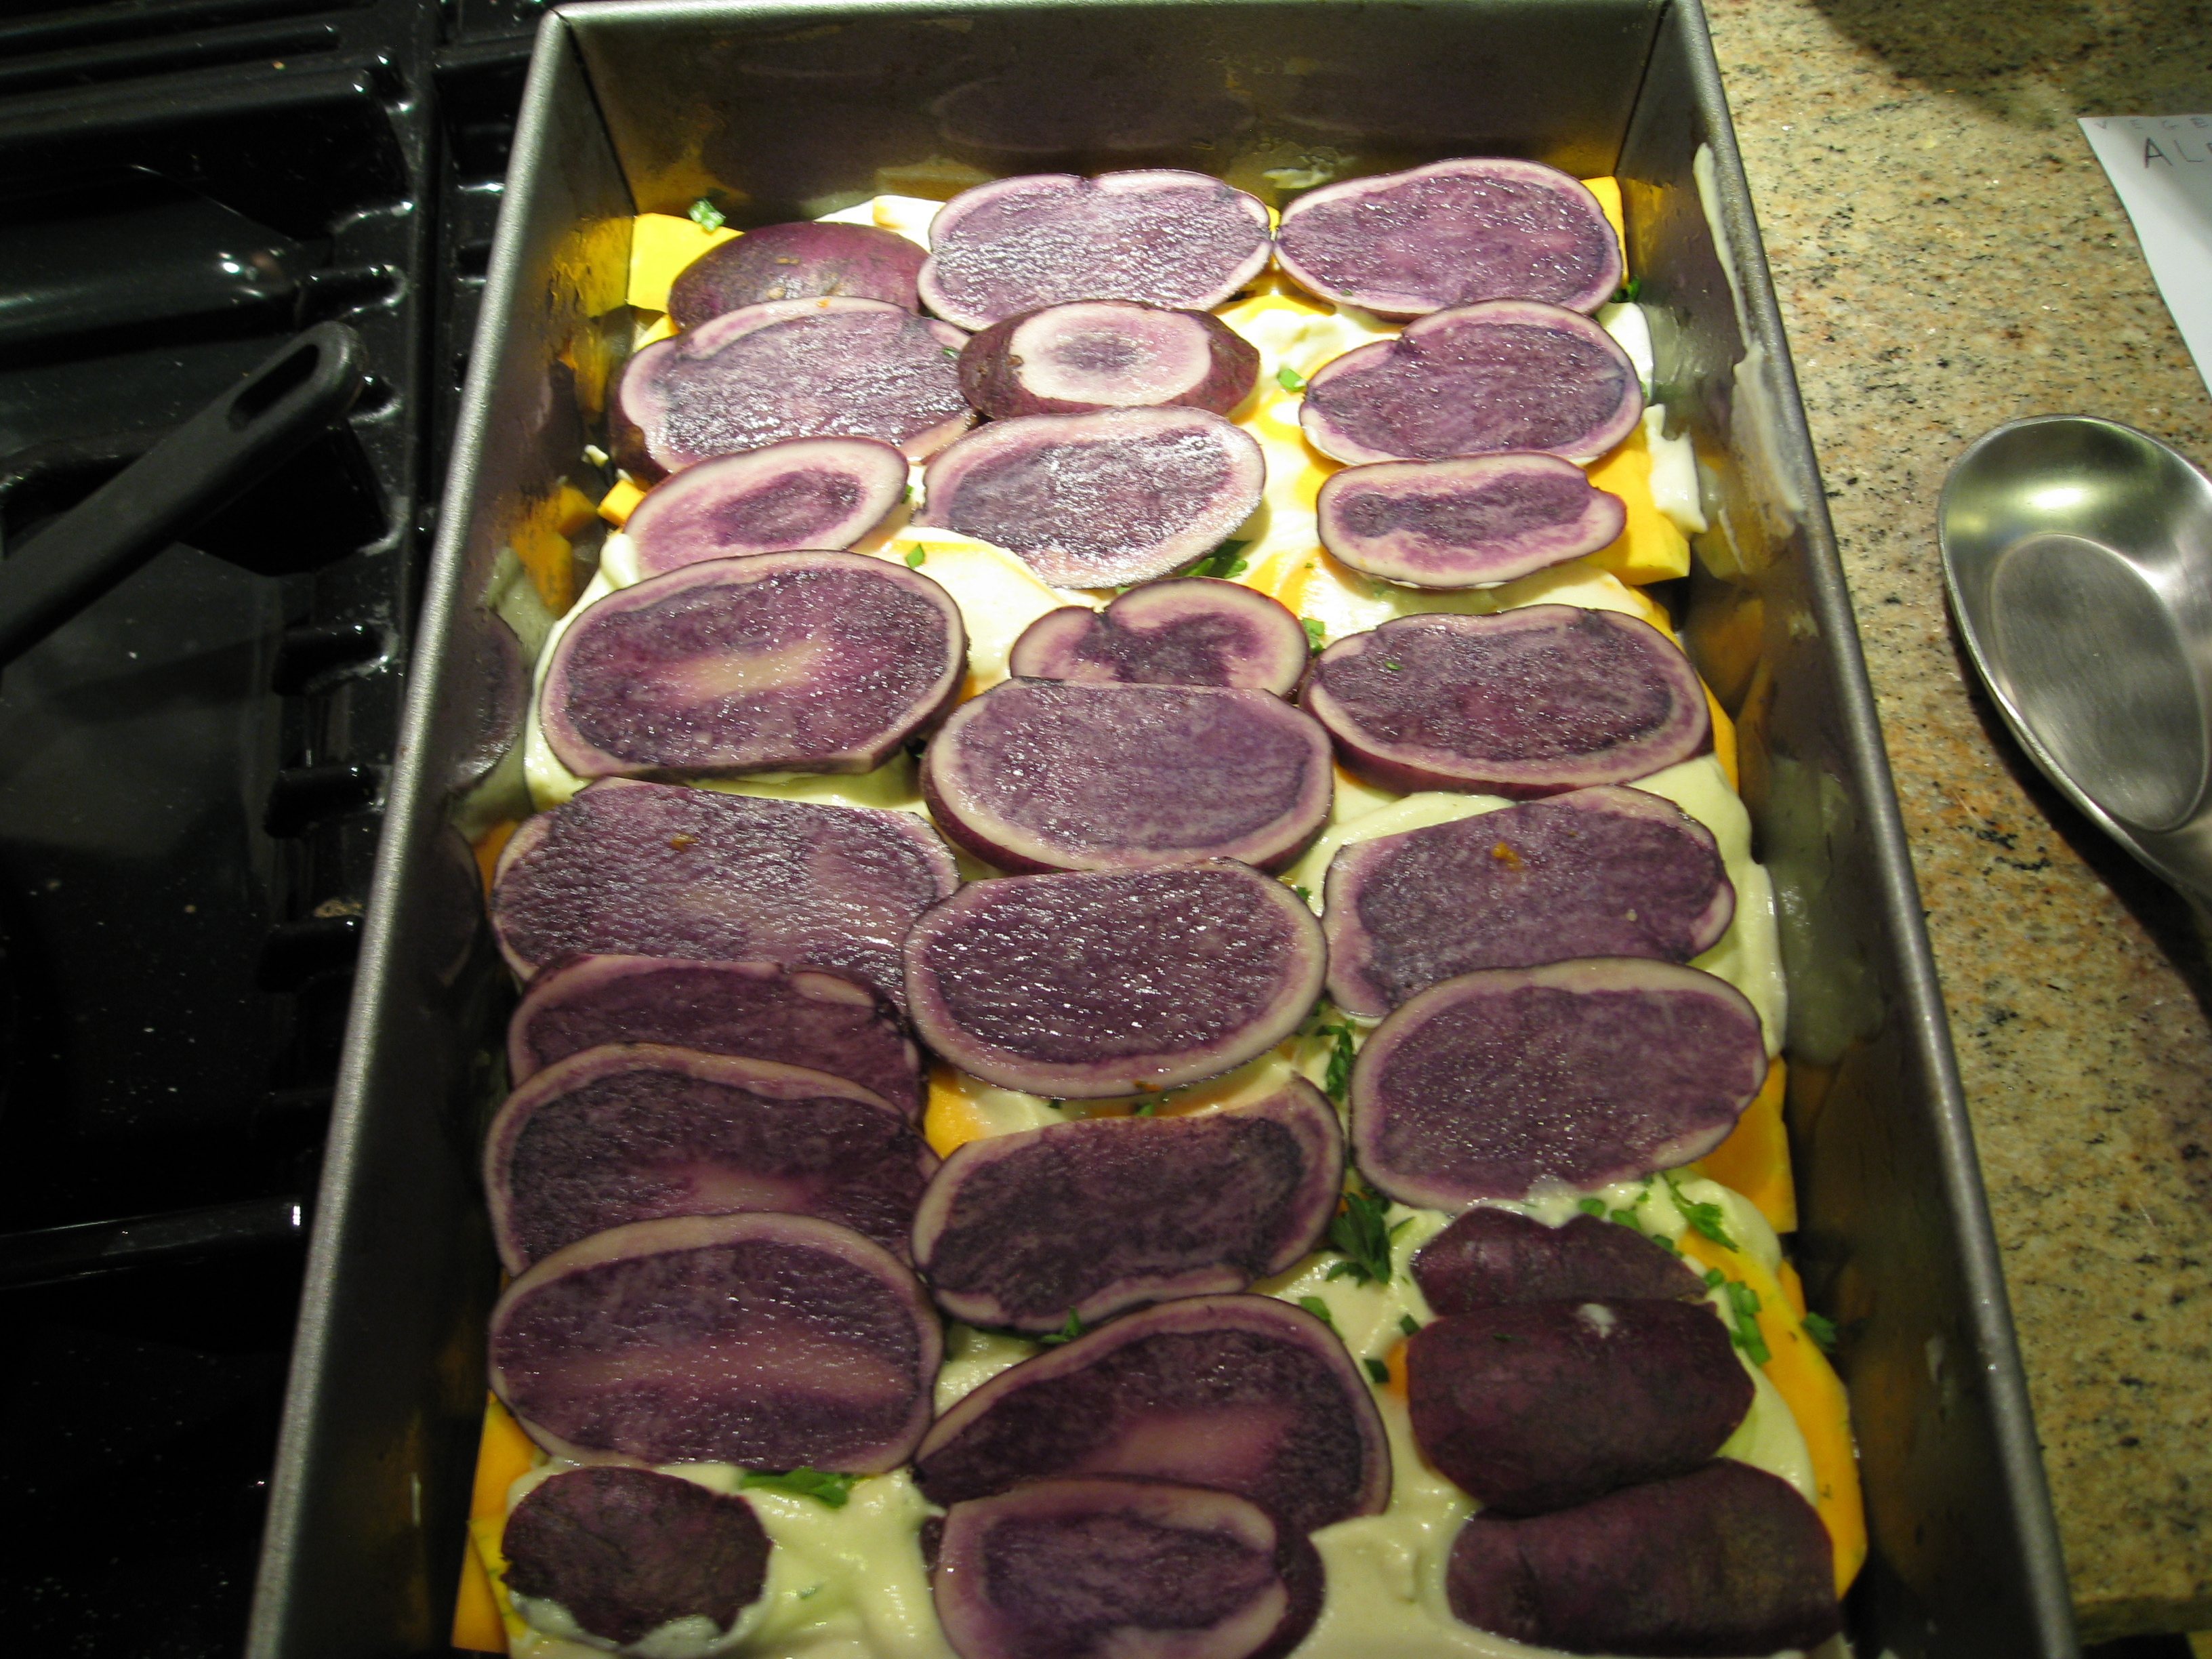 We used purple potatoes for our veggie bake.